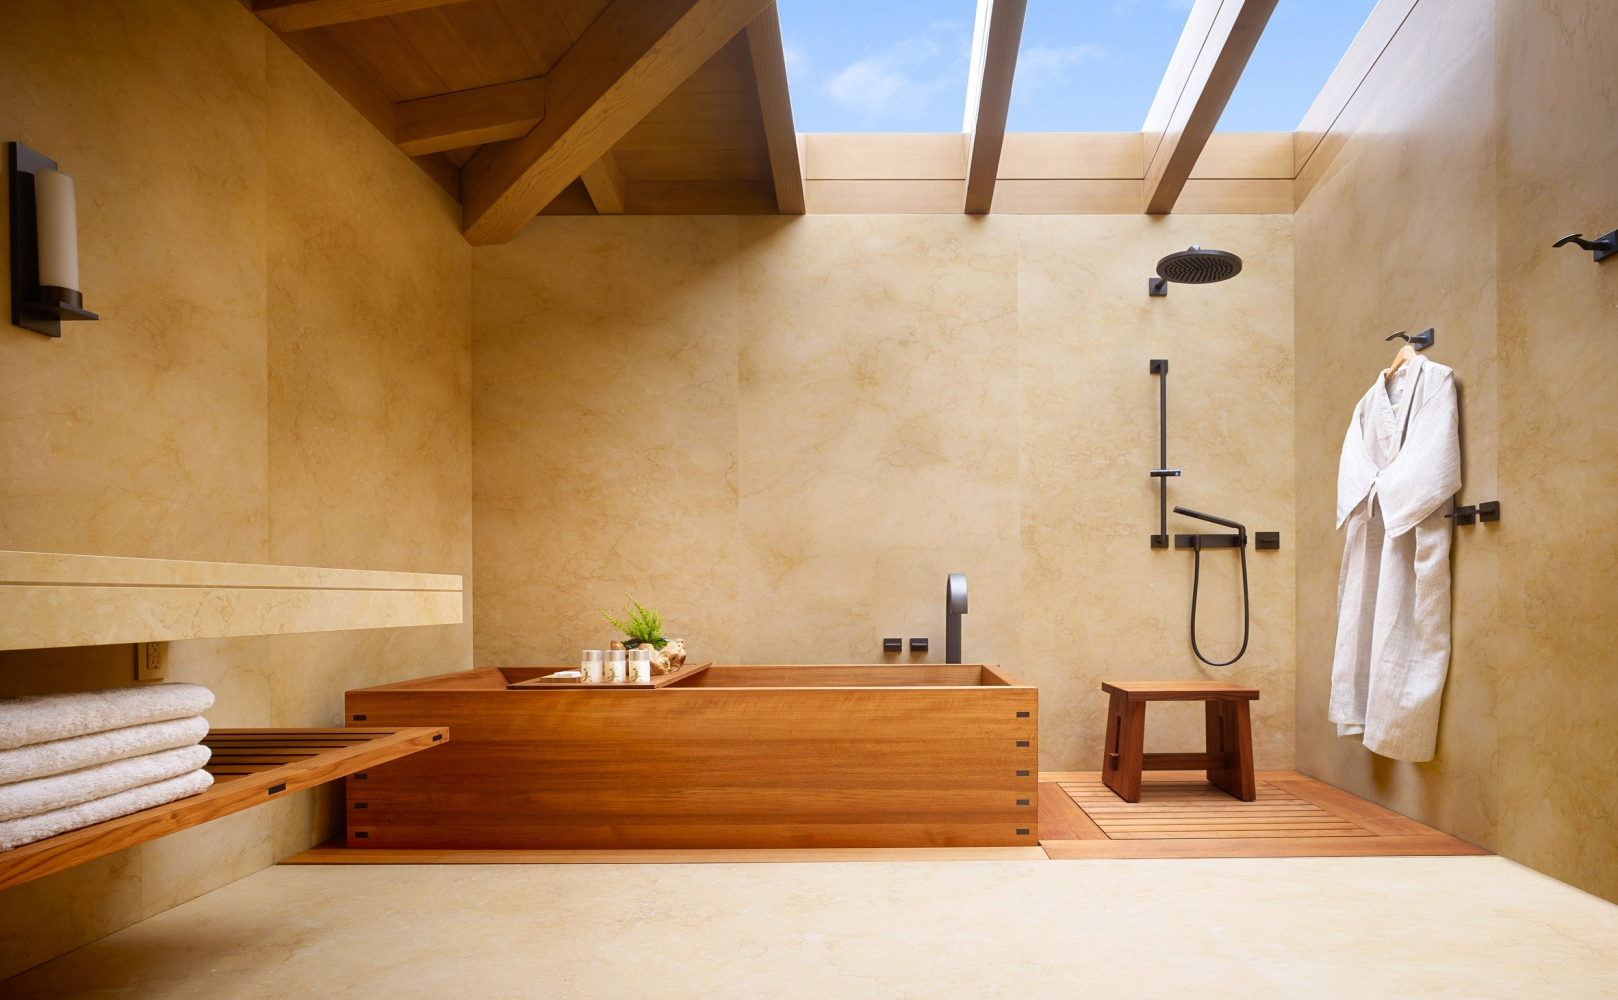 x-nobu-ryokan-malibu-resort-hotel-japanese-california-studio-pch-montalba-architects-beach-waterfront_dezeen_0